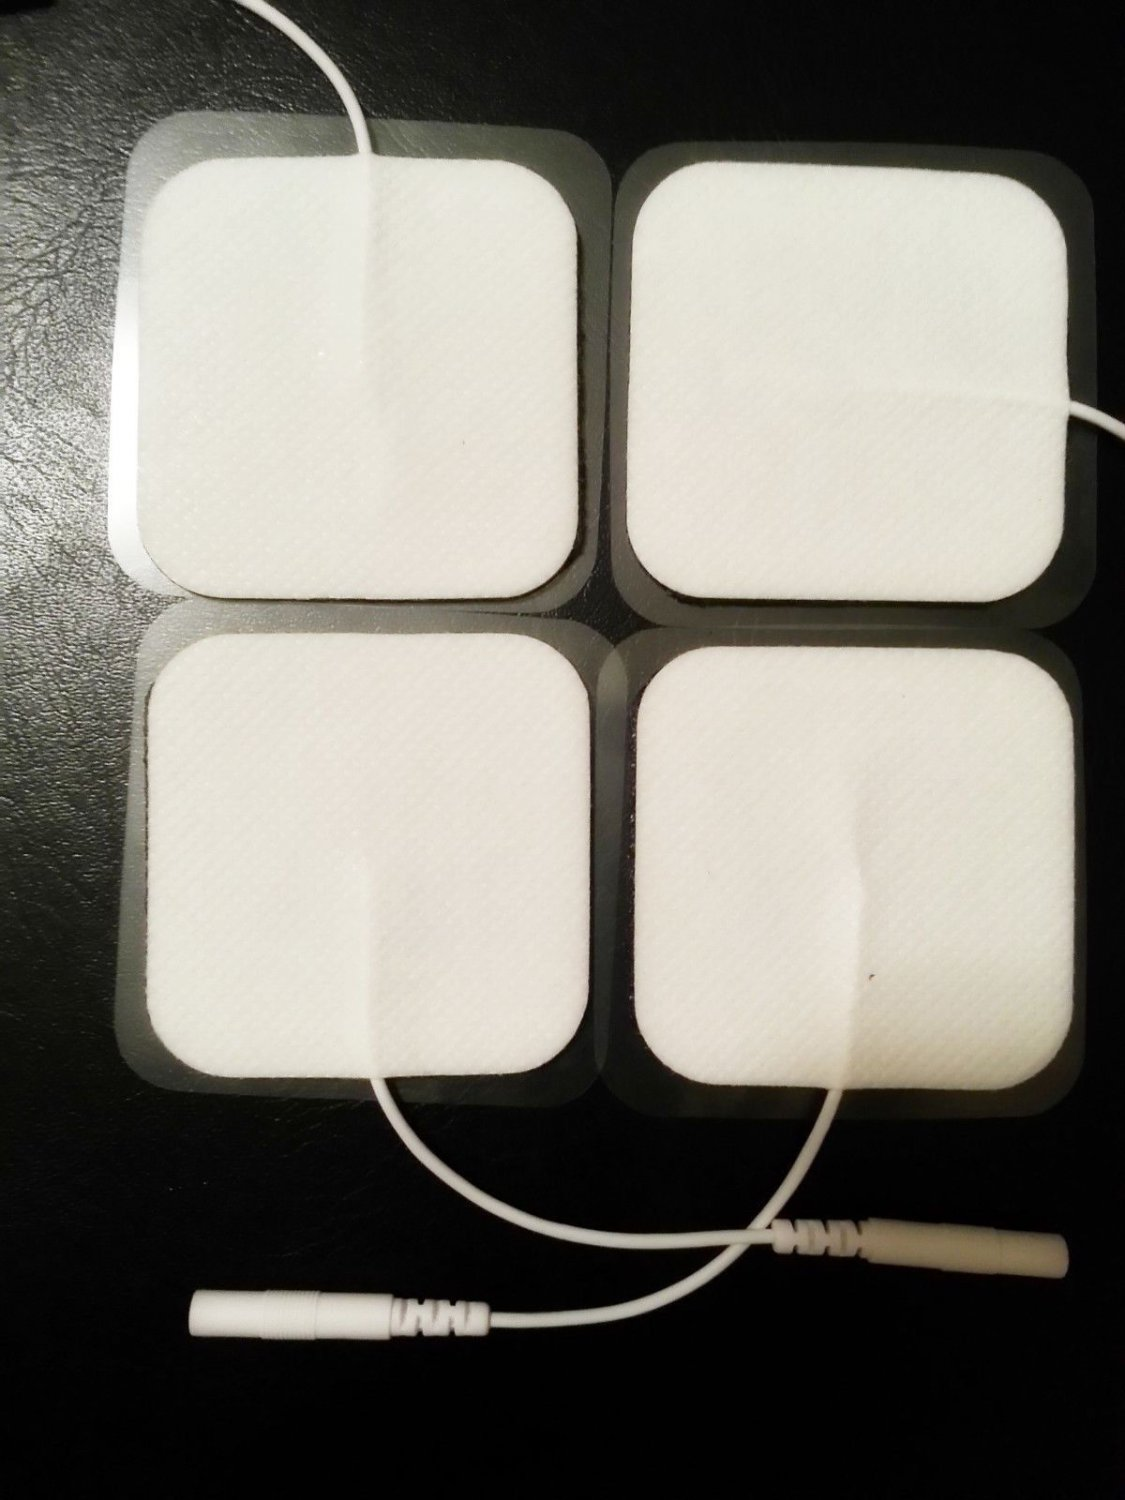 """8 pc Square Replacement Electrode Pads 2""""x2"""" for Compex Muscle Stimulator Empi"""